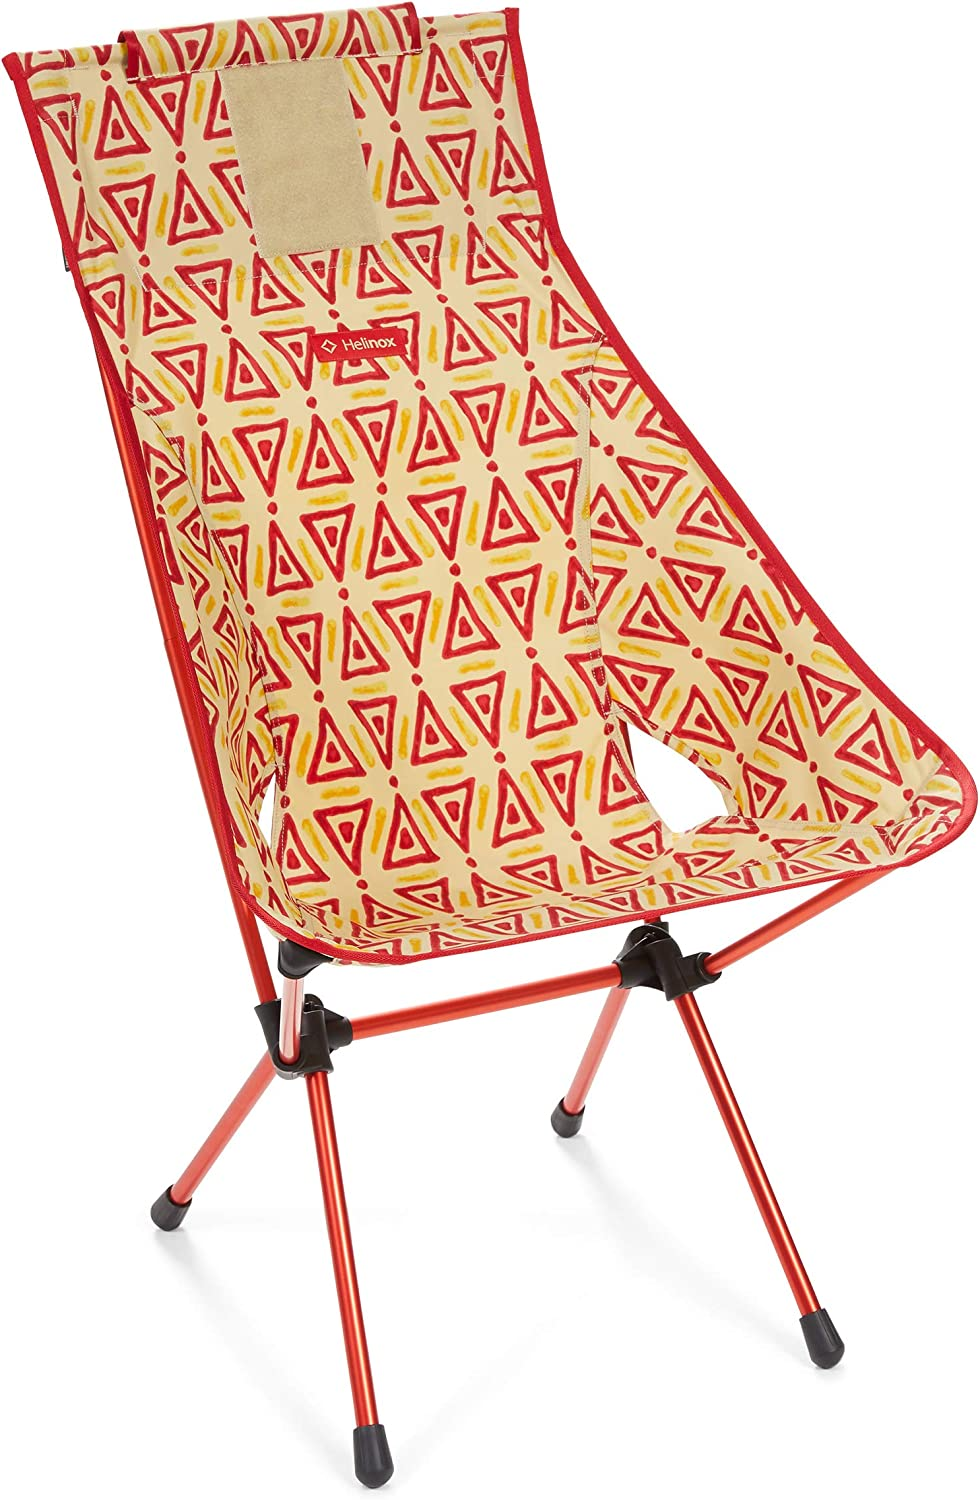 81hDu23UITL. AC SL1500 - Helinox Sunset Chair Review in 2021: The Best Camp Chair?